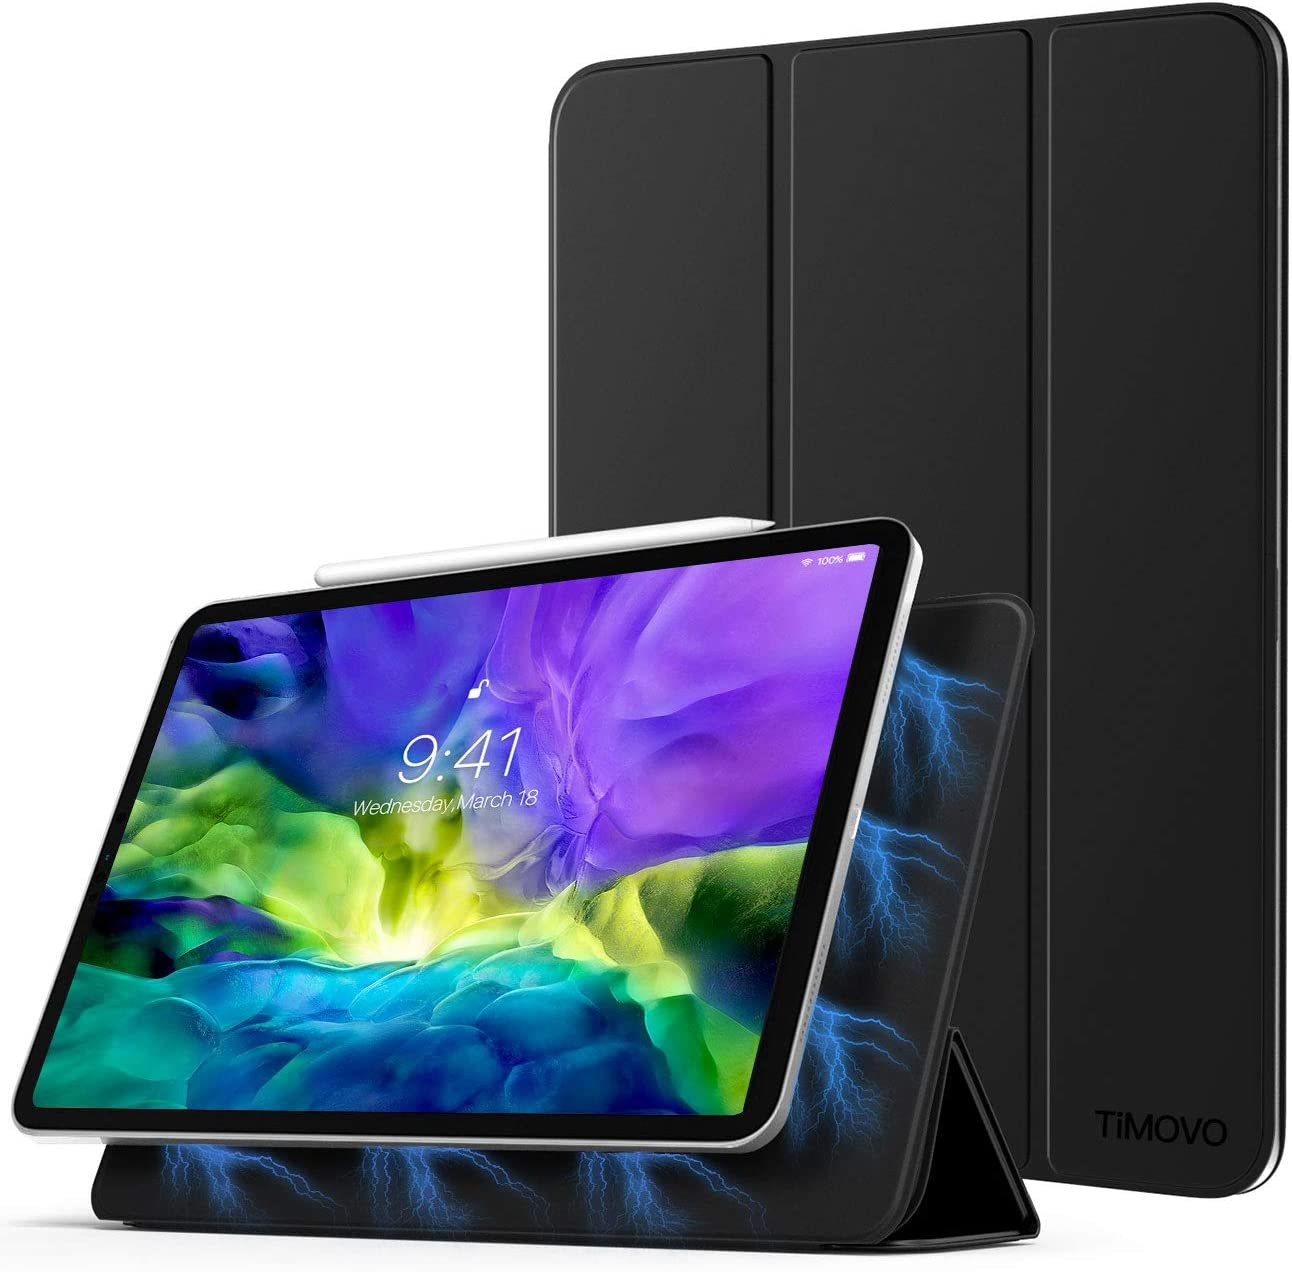 TiMOVO Case for New iPad Pro 11 Inch 2020 (2nd Generation), Strong Magnetic Trifold Stand Case Cover with Auto Sleep/Wake Fit iPad Pro 11